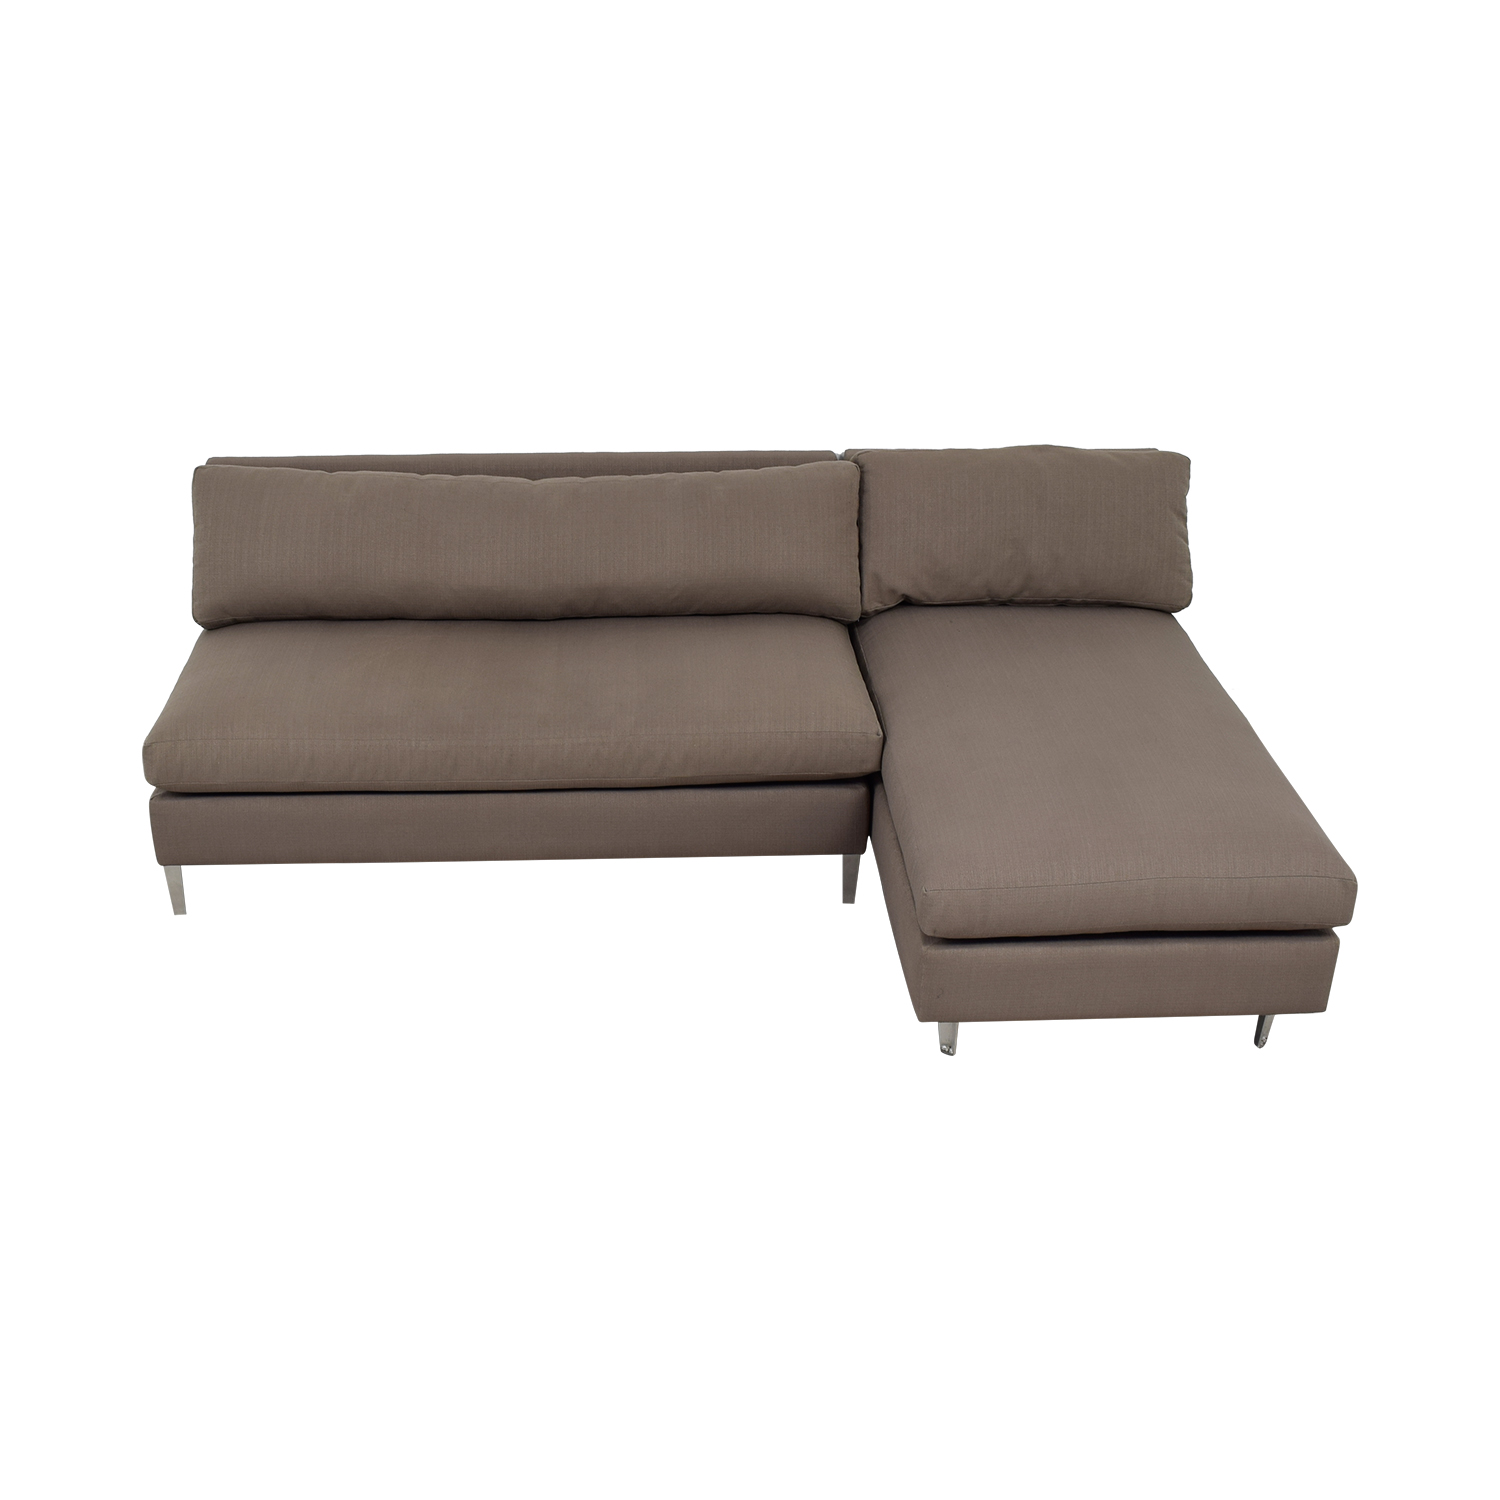 CB2 CB2 Grey No Arms Chaise Sectional used